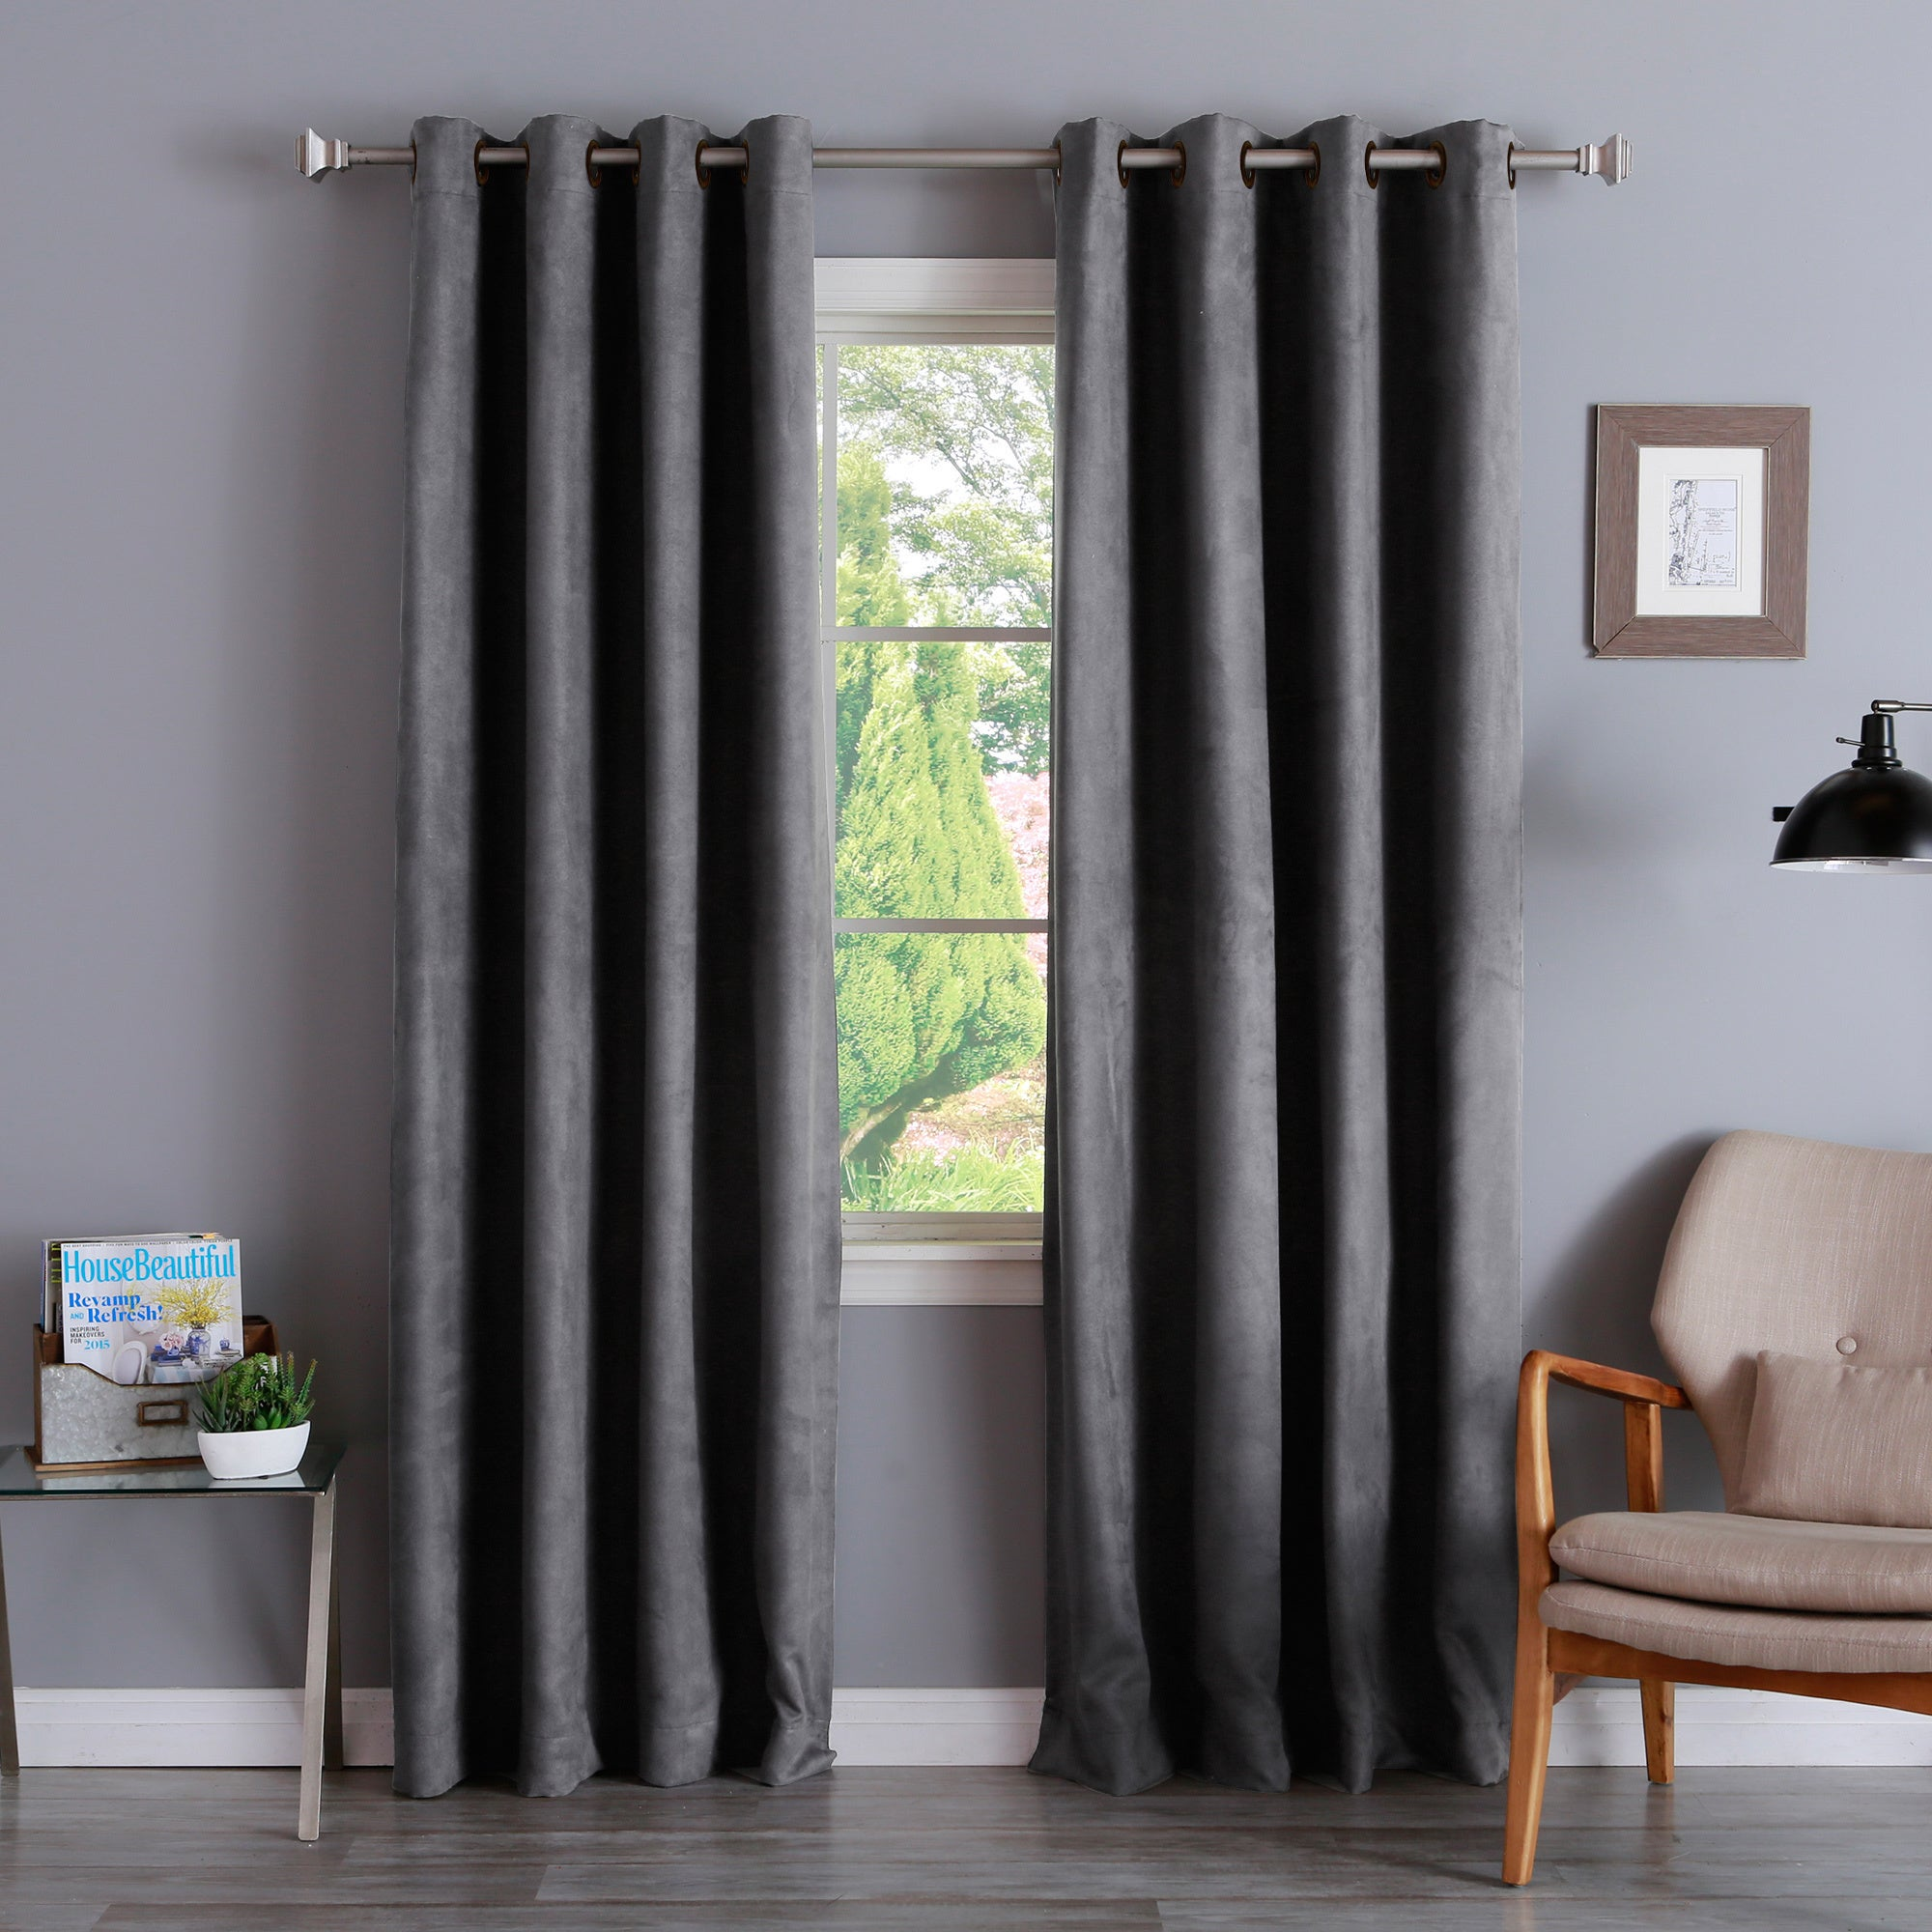 Aurora Home Faux Suede 84-inch Insulated Blackout Curtain Pair - 52 x 84 (Olive)